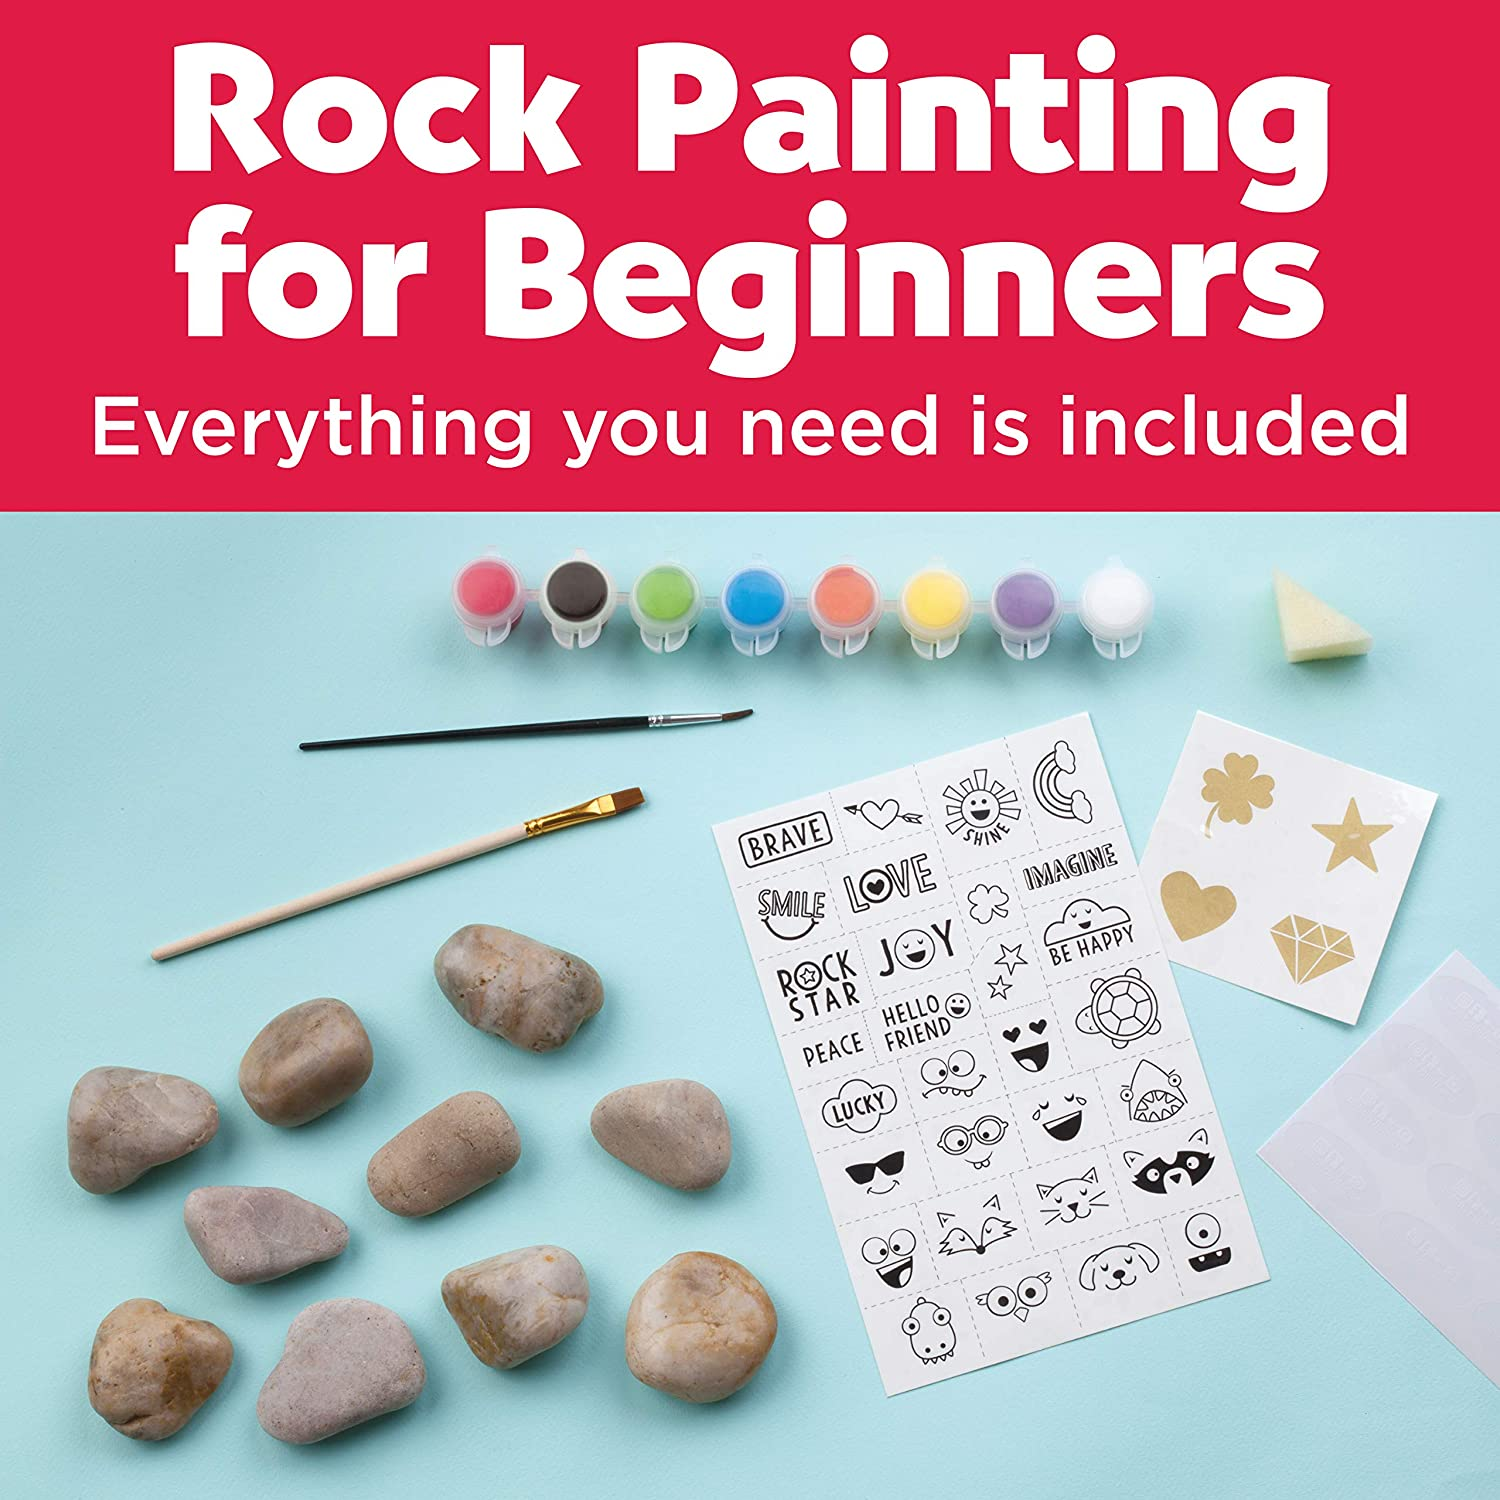 Amazon Com Creativity For Kids Hide Seek Rock Painting Kit Arts Crafts For Kids Includes Rocks Waterproof Paint Toys Games